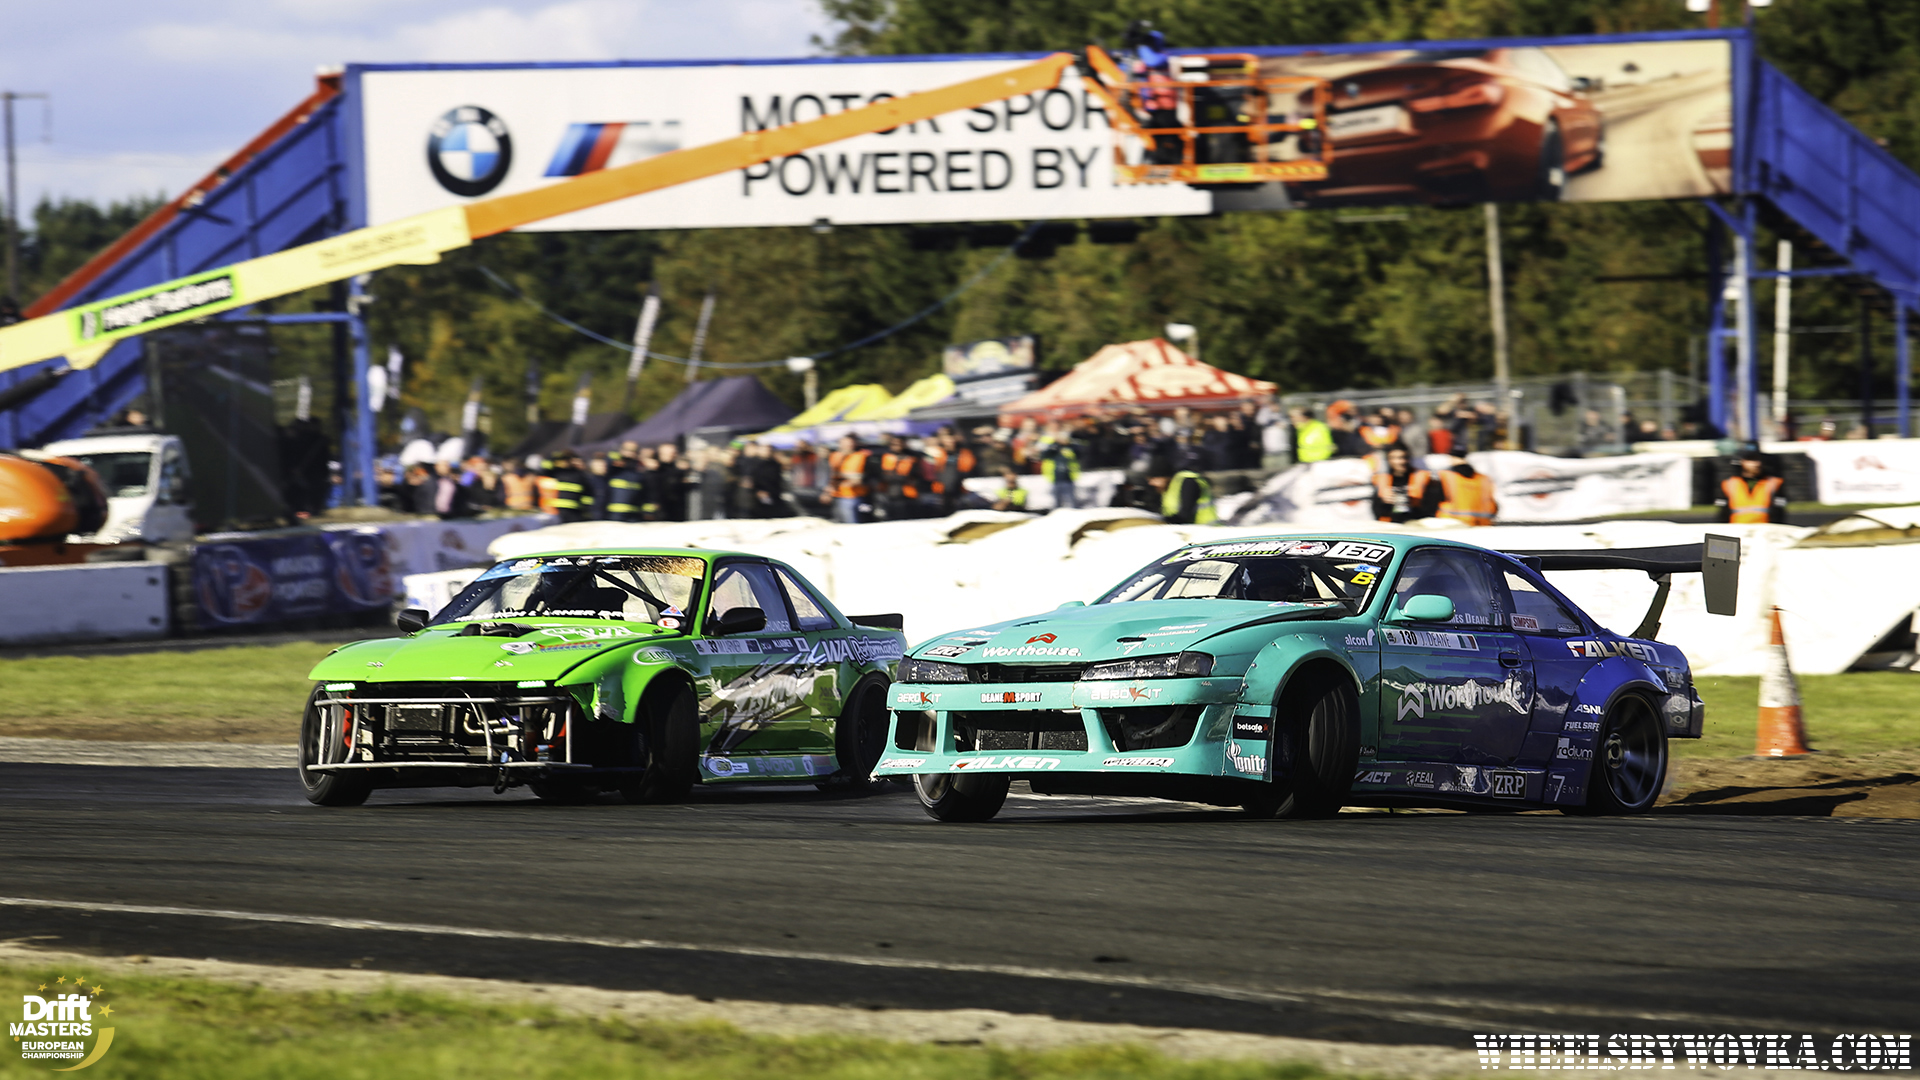 drift-masters-european-championship-mondello-by-wheelsbywovka-19